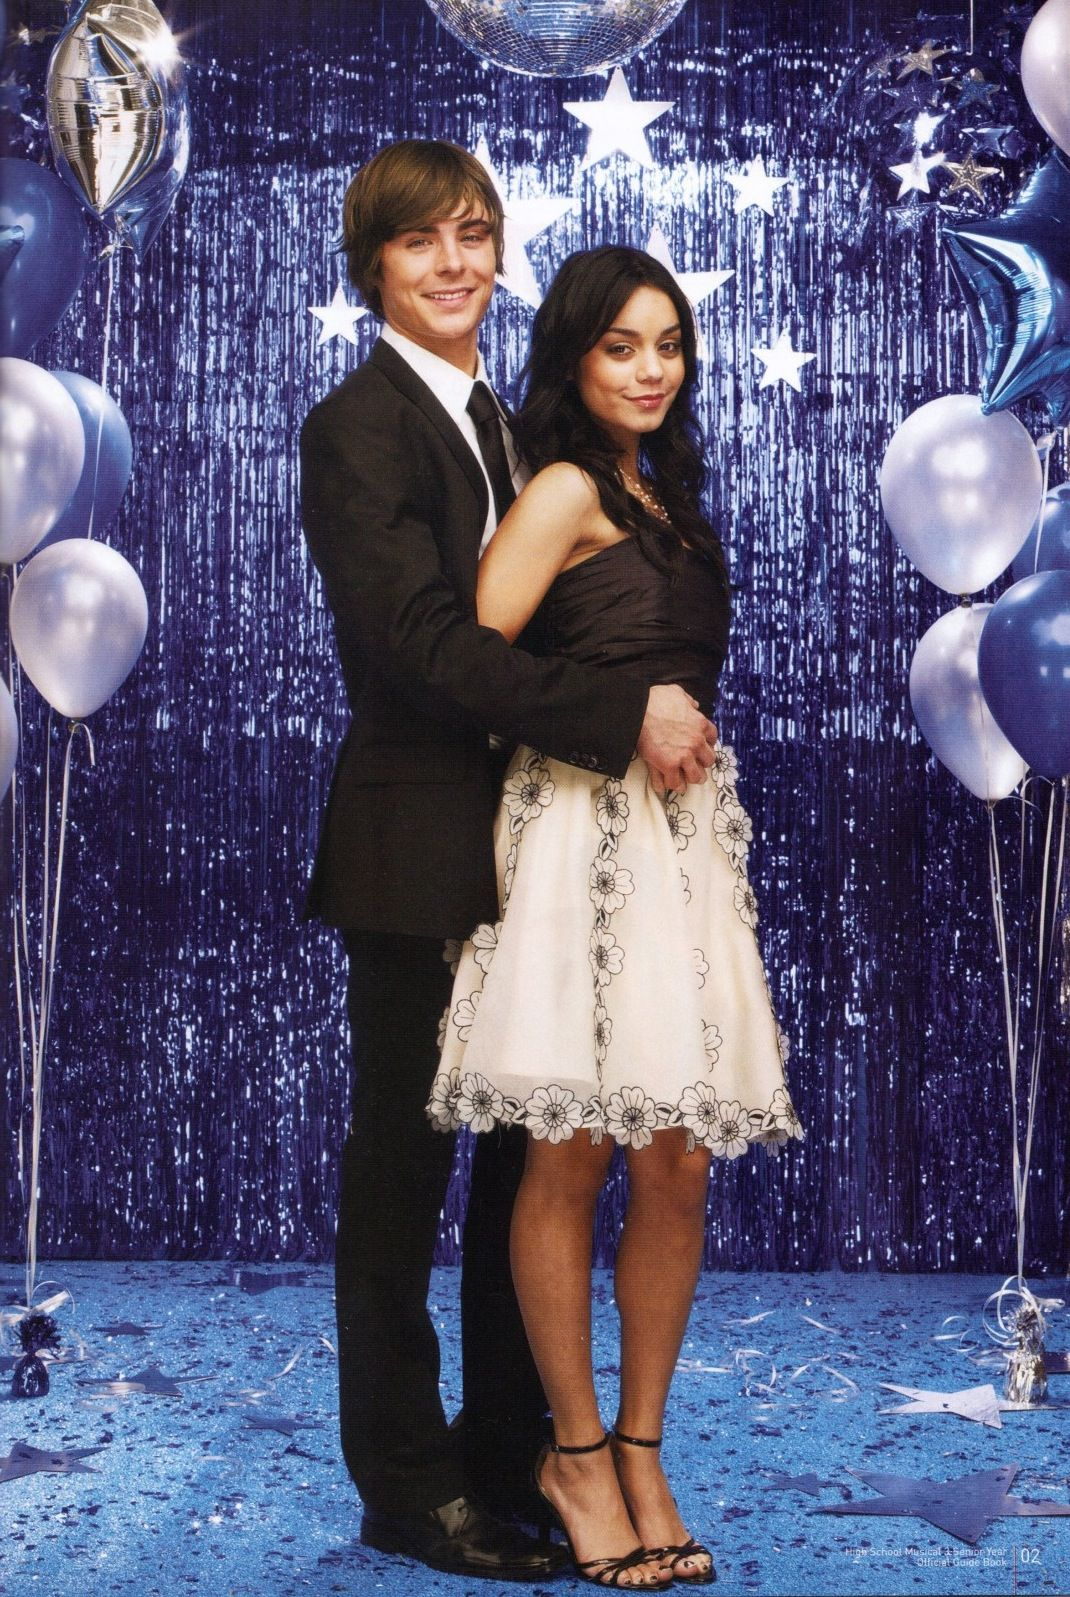 6 Things Every Girl Remembers From Middle School Dances